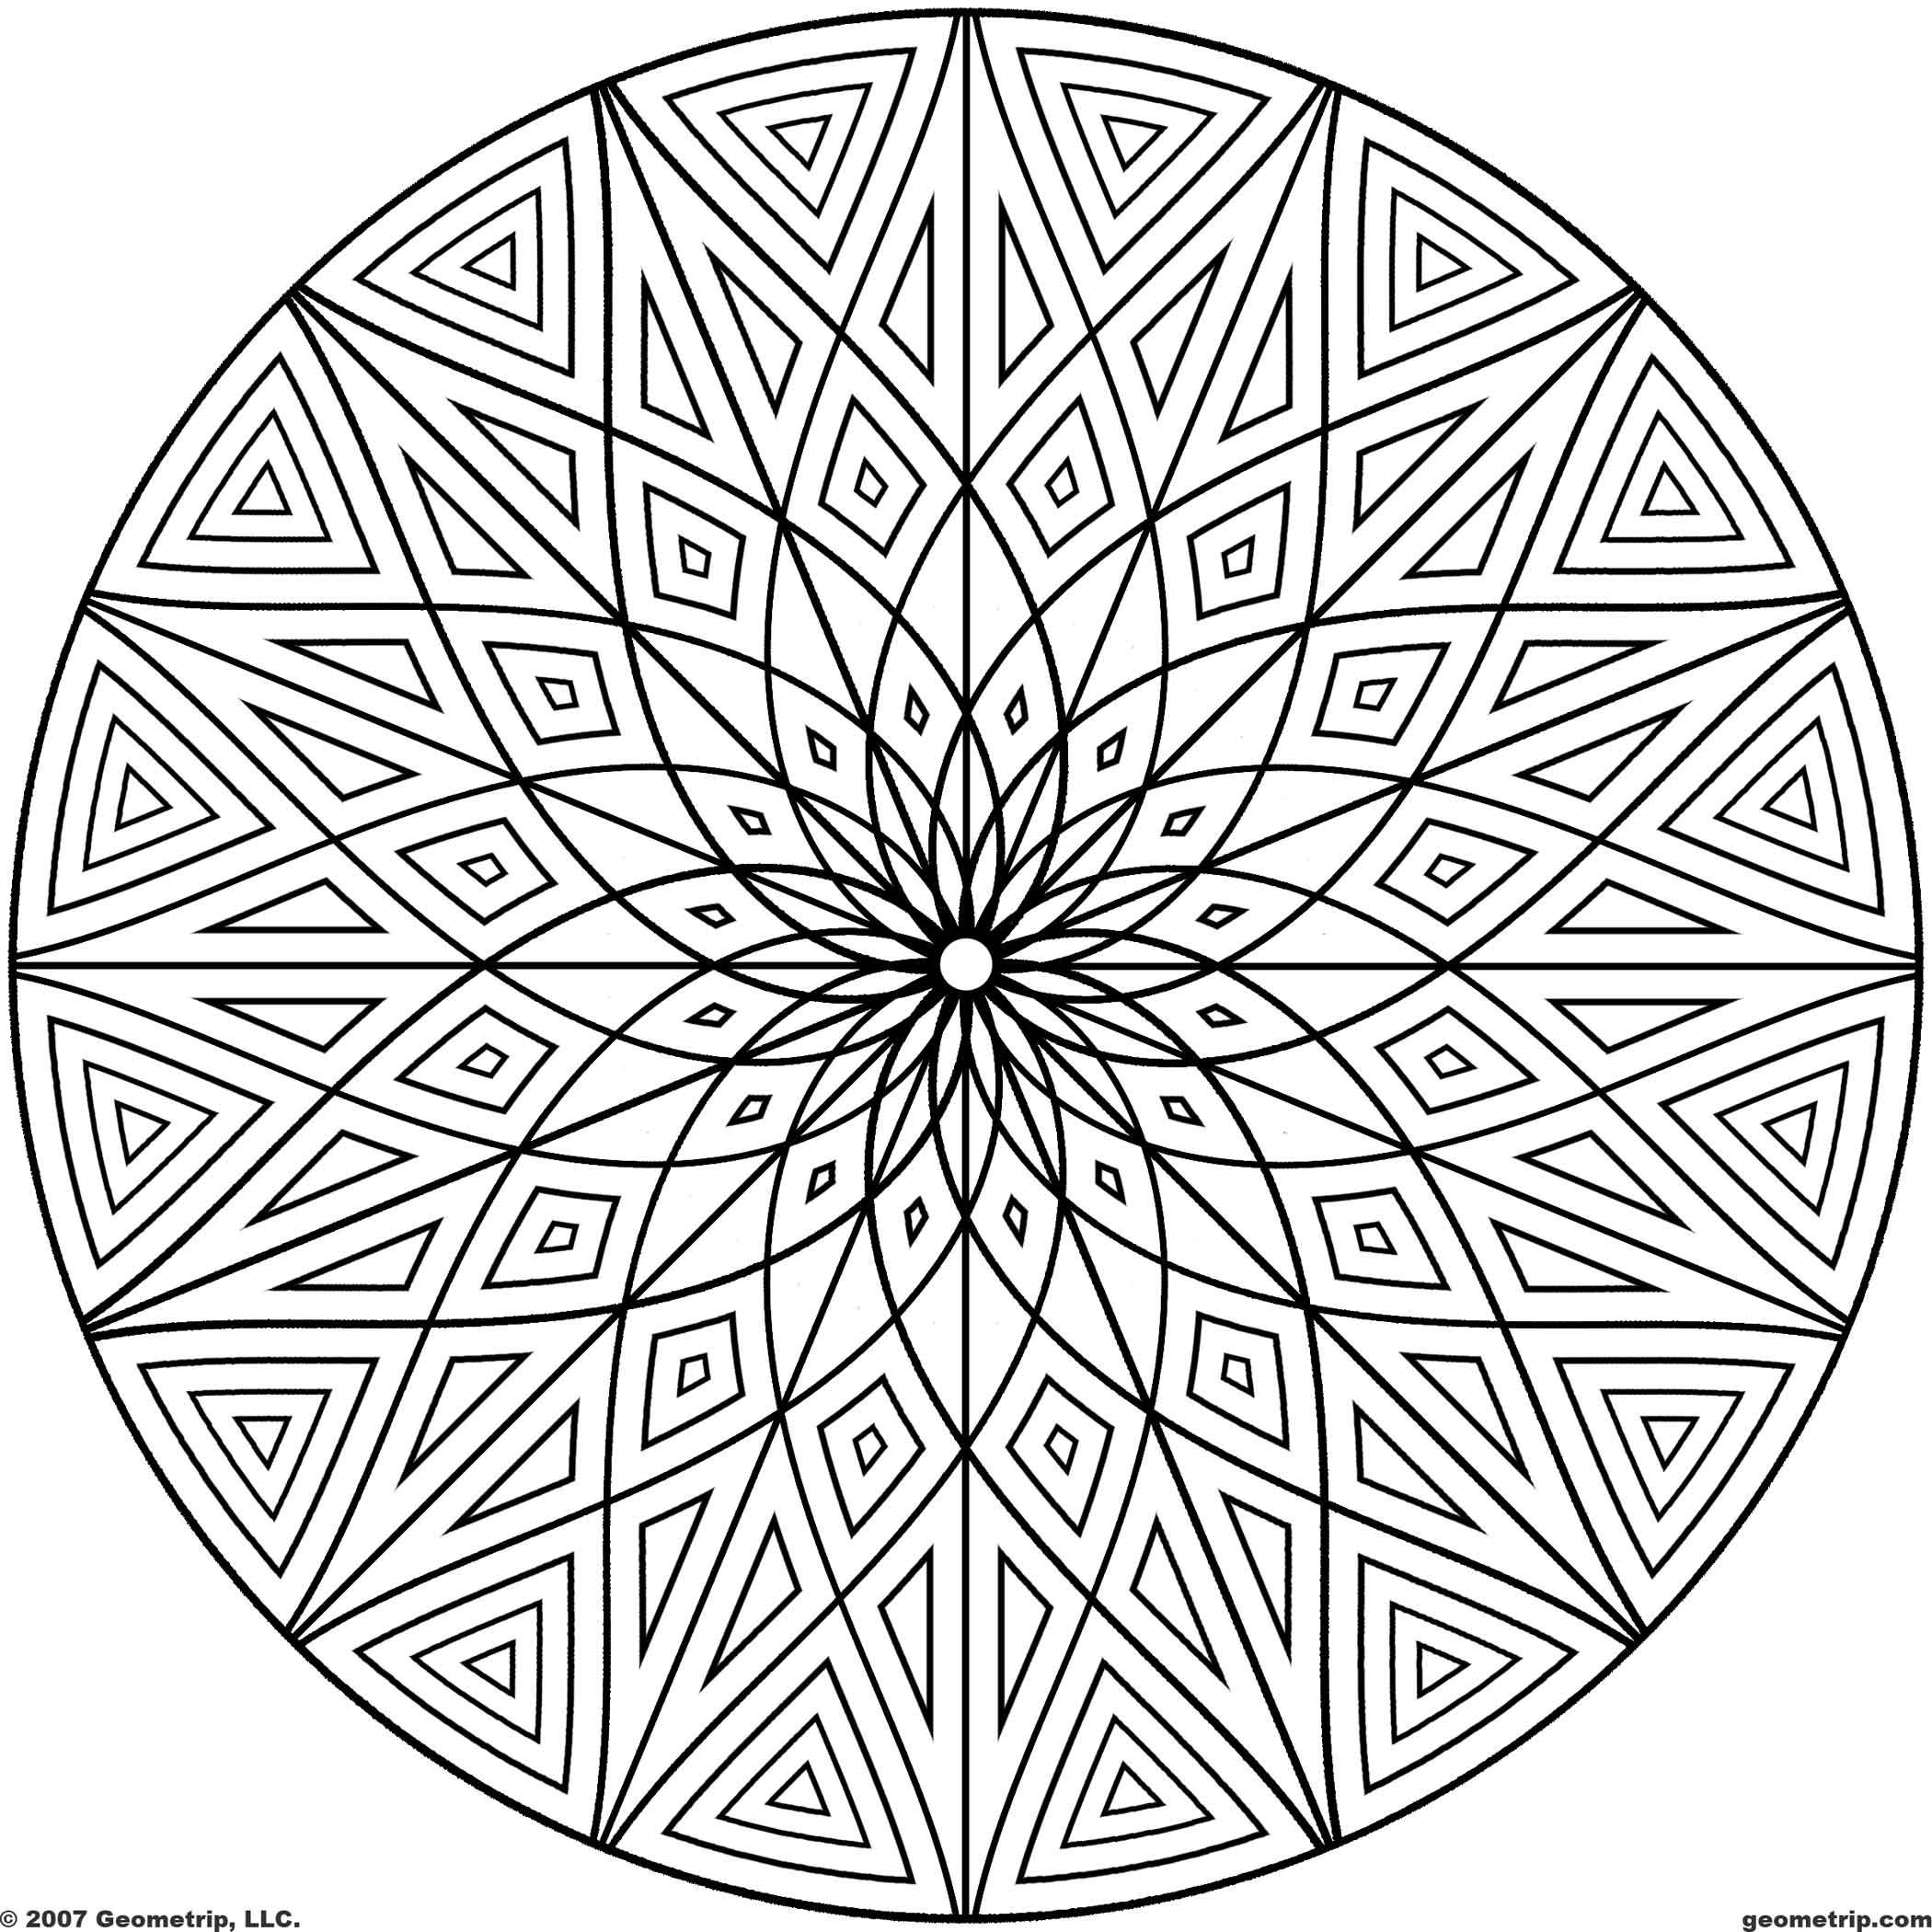 Starburst Mandala Geometric Coloring Pages Cool Coloring Pages Mandala Coloring Pages